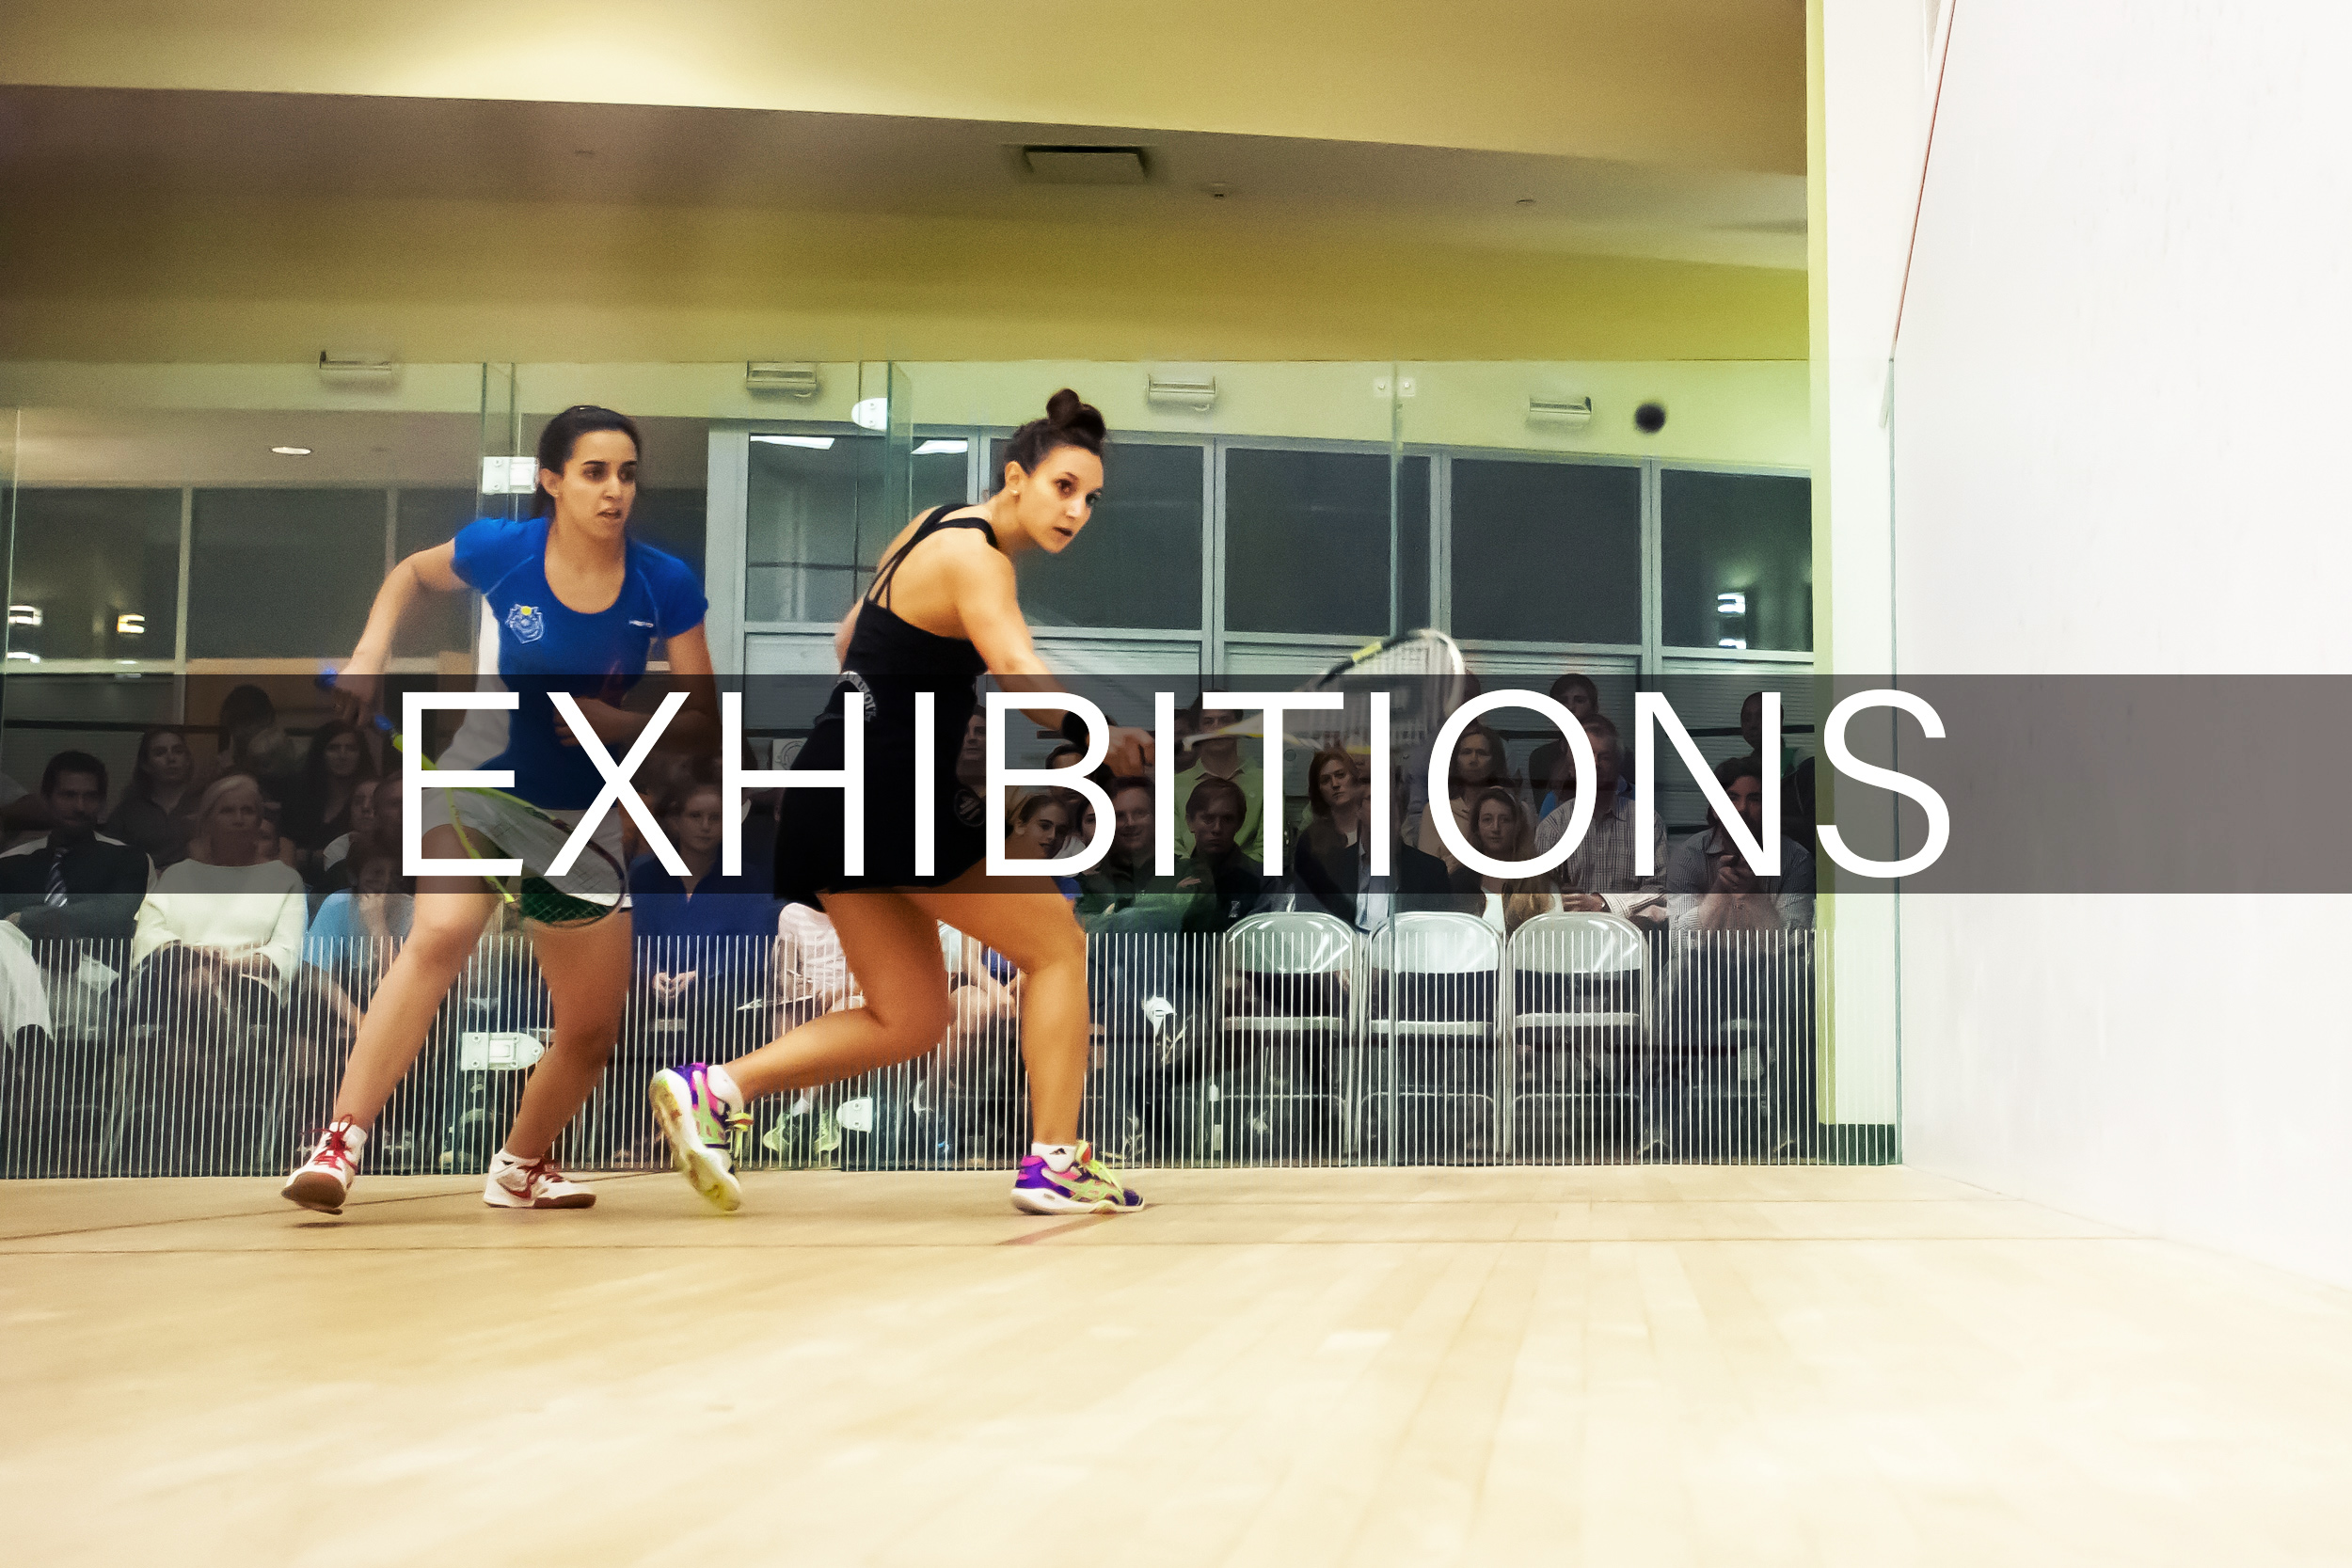 201508SquashCamp-0937p_1mf-2500-EXHIBITIONS2-ed.jpg